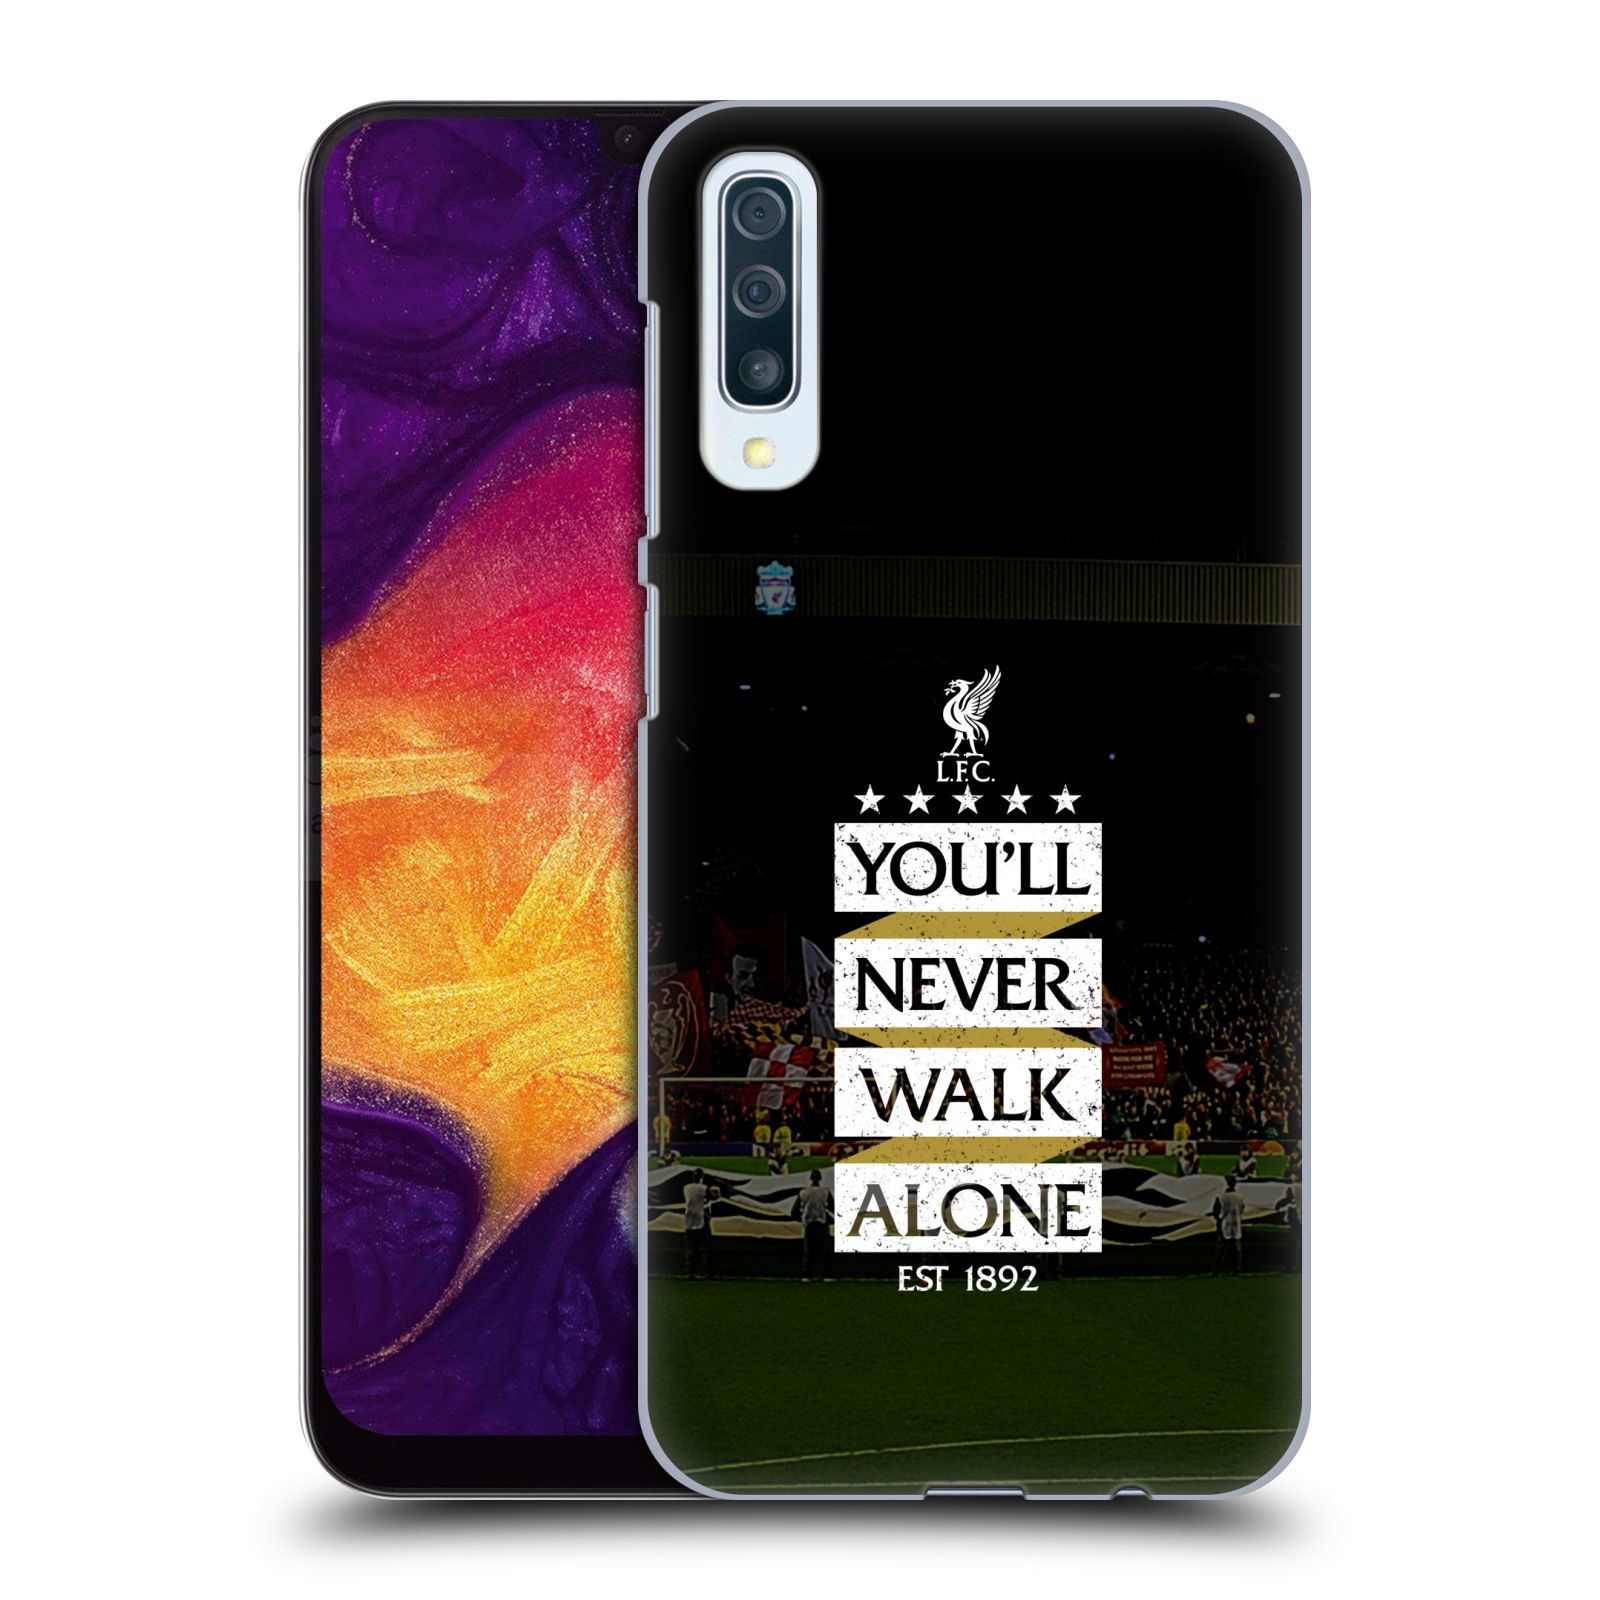 Plastové pouzdro na mobil Samsung Galaxy A50 / A30s - Head Case - LFC You'll Never Walk Alone